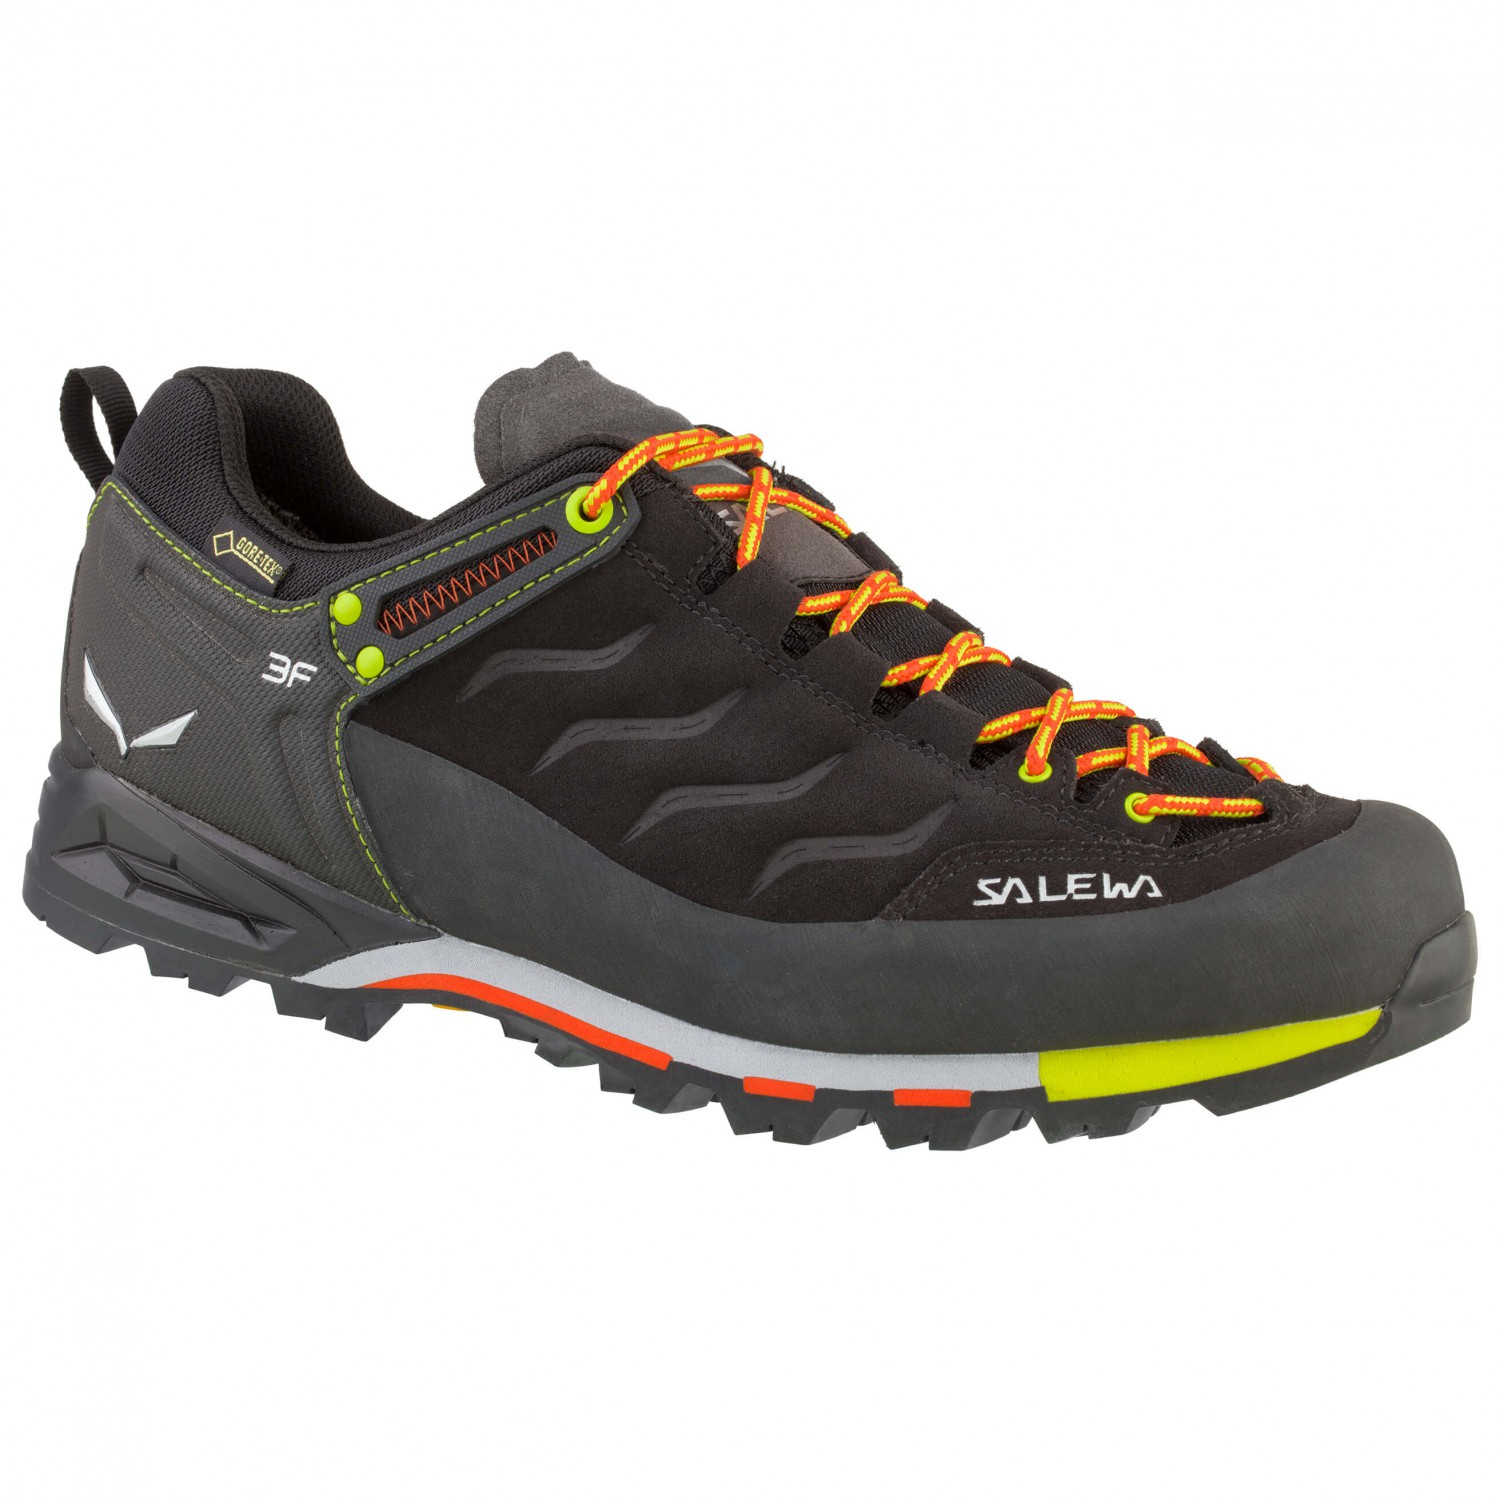 salewa mtn trainer gtx chaussures d 39 approche homme. Black Bedroom Furniture Sets. Home Design Ideas